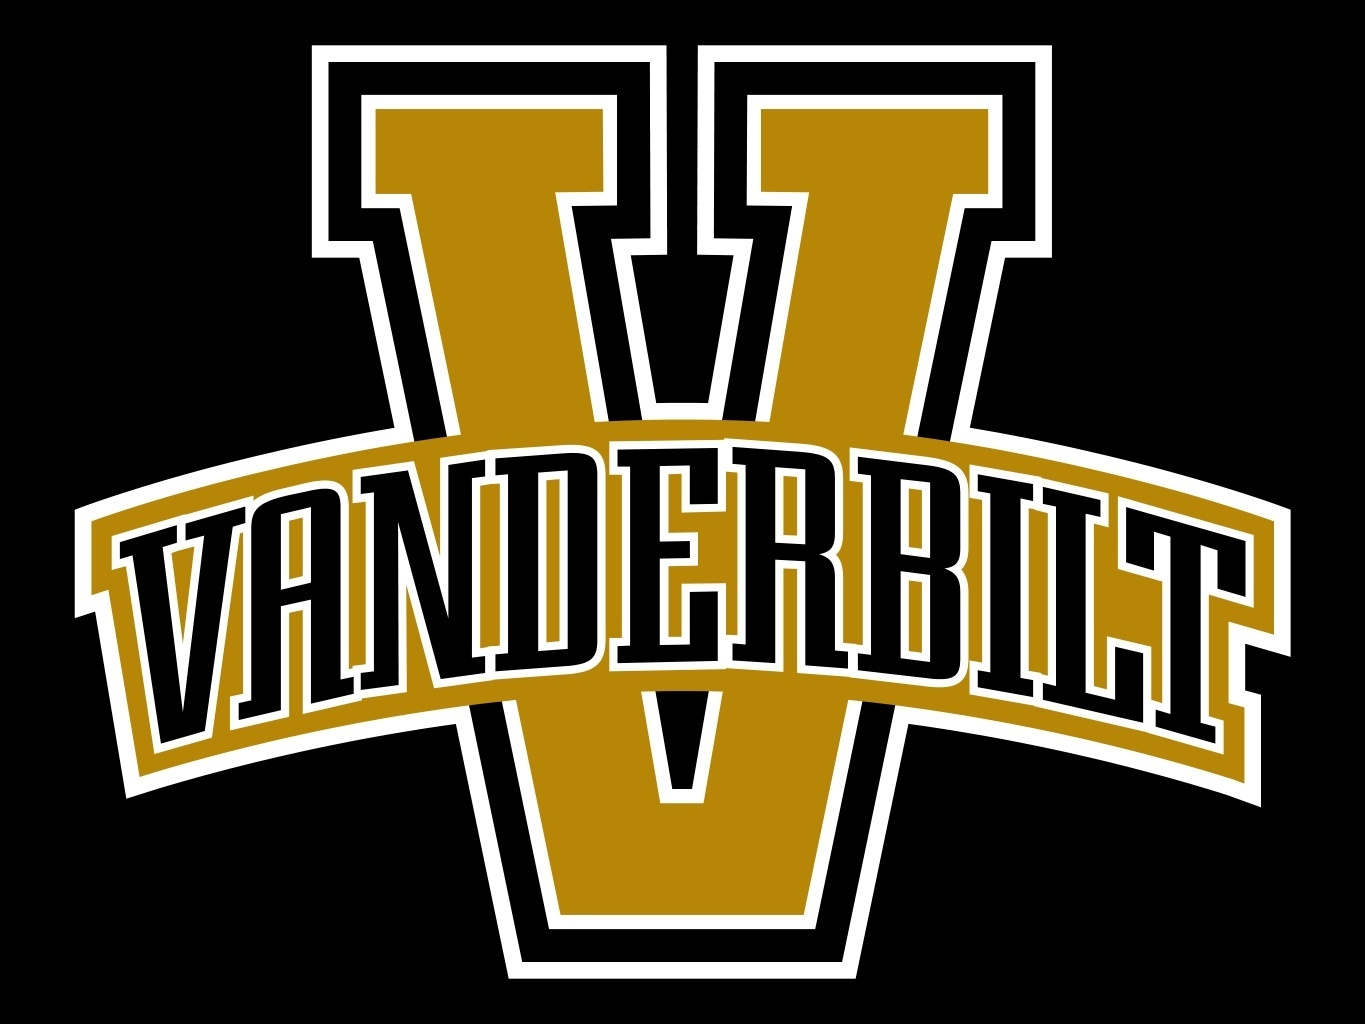 Futures Champion Eleanor Beers Commits To Vanderbilt For Fall of 2020